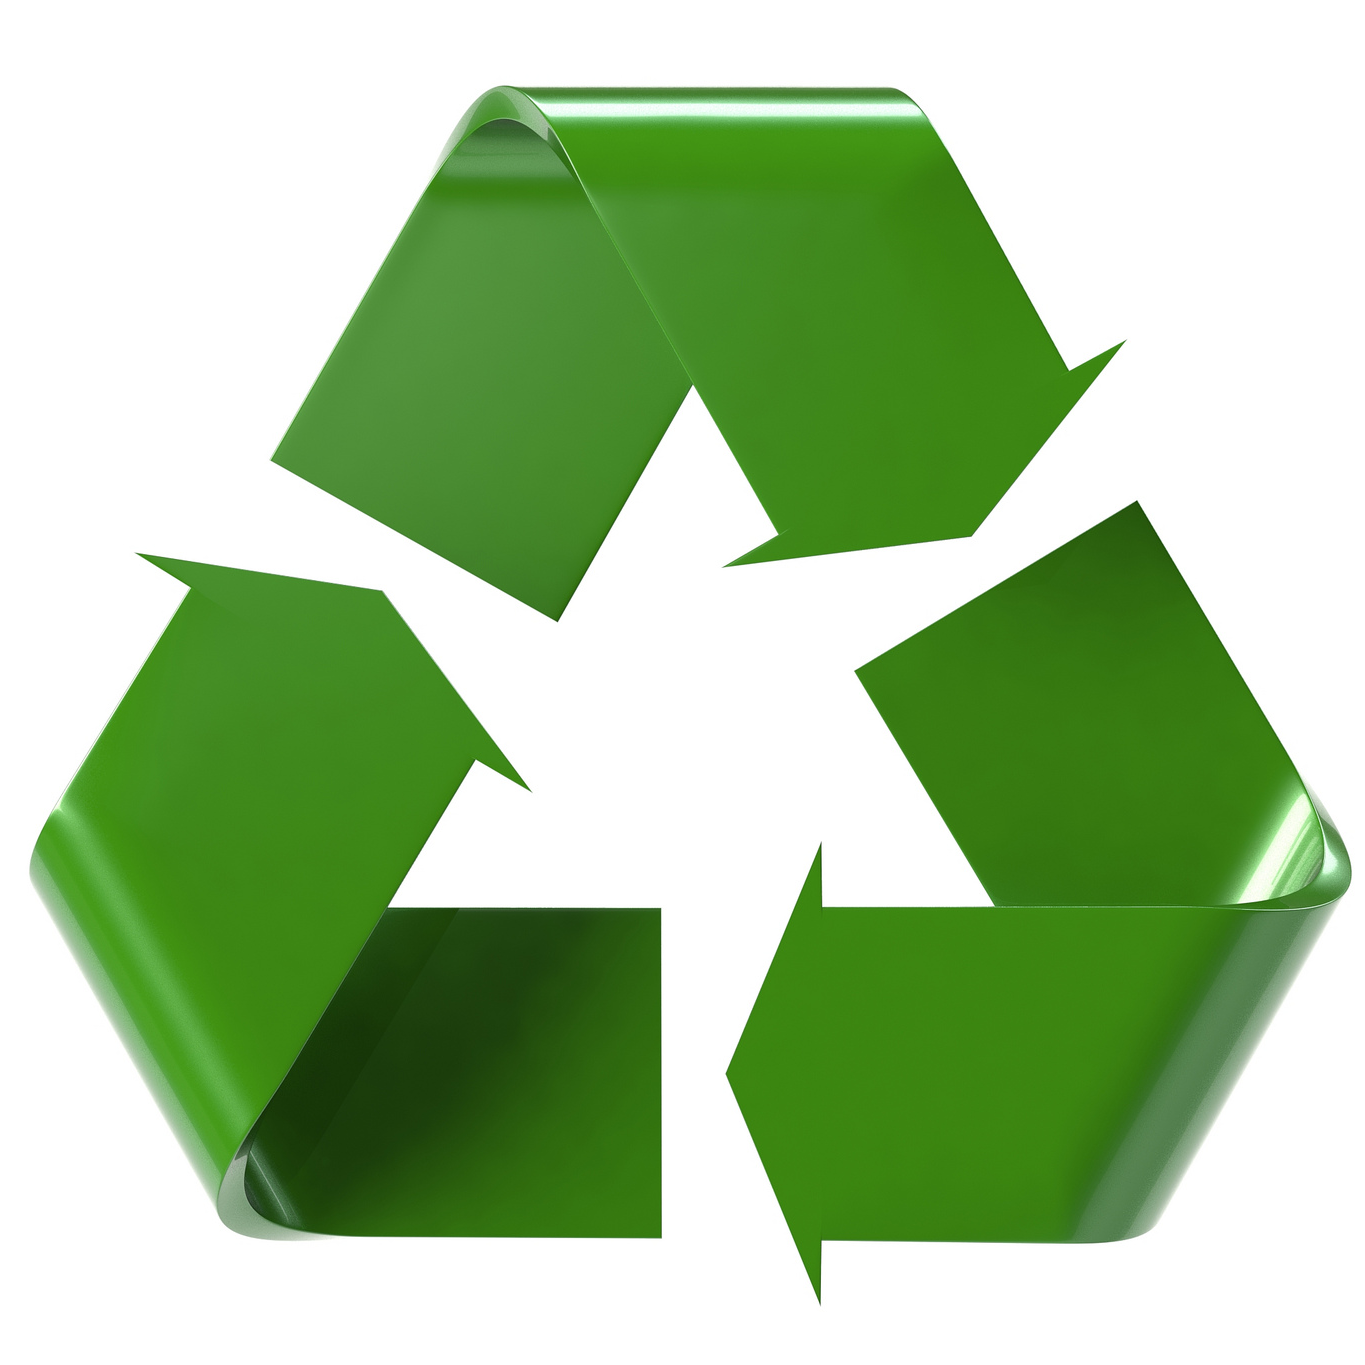 Recycle your waste at Grogan Waste Services